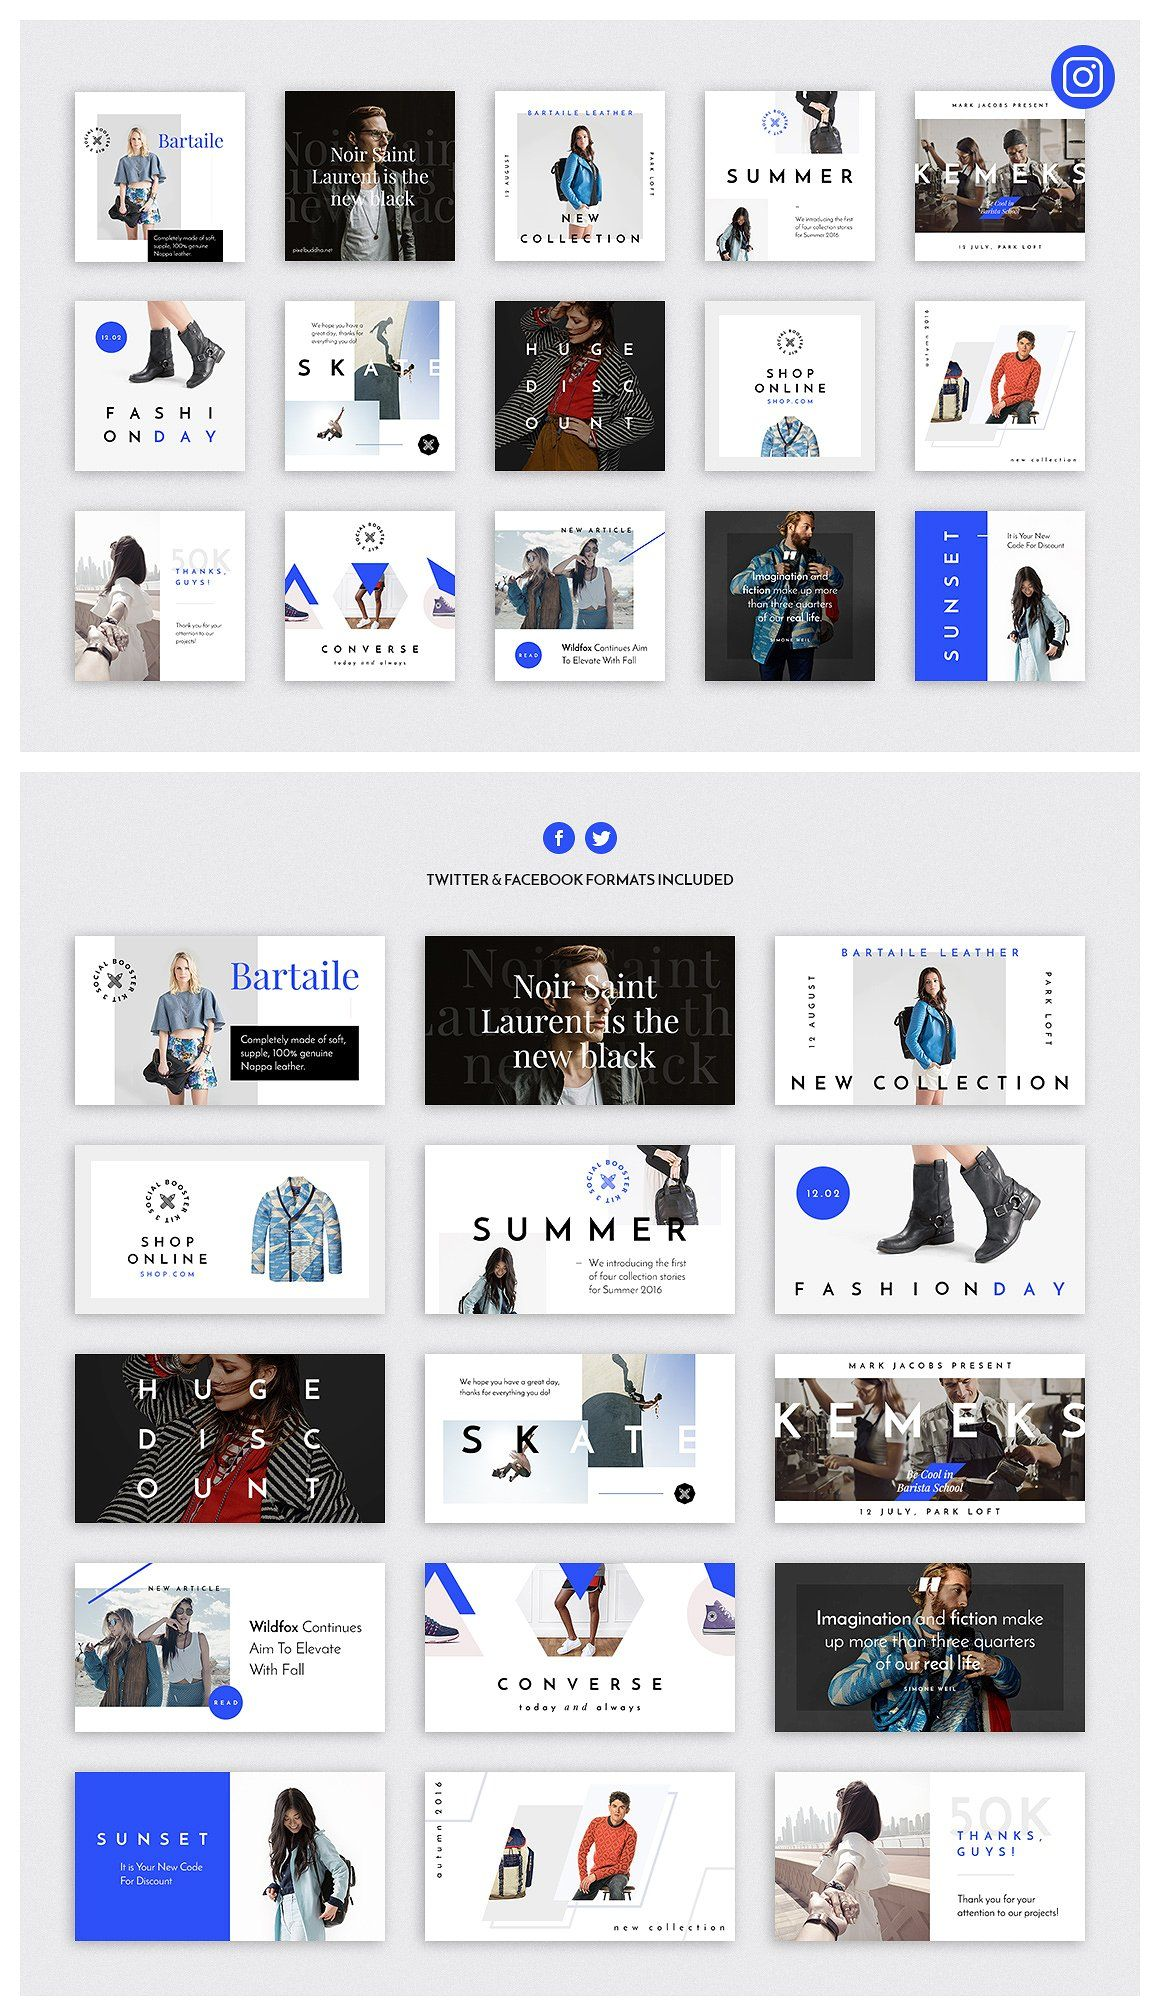 Pin By Olena On Shoes Pinterest Banners Layouts And Social